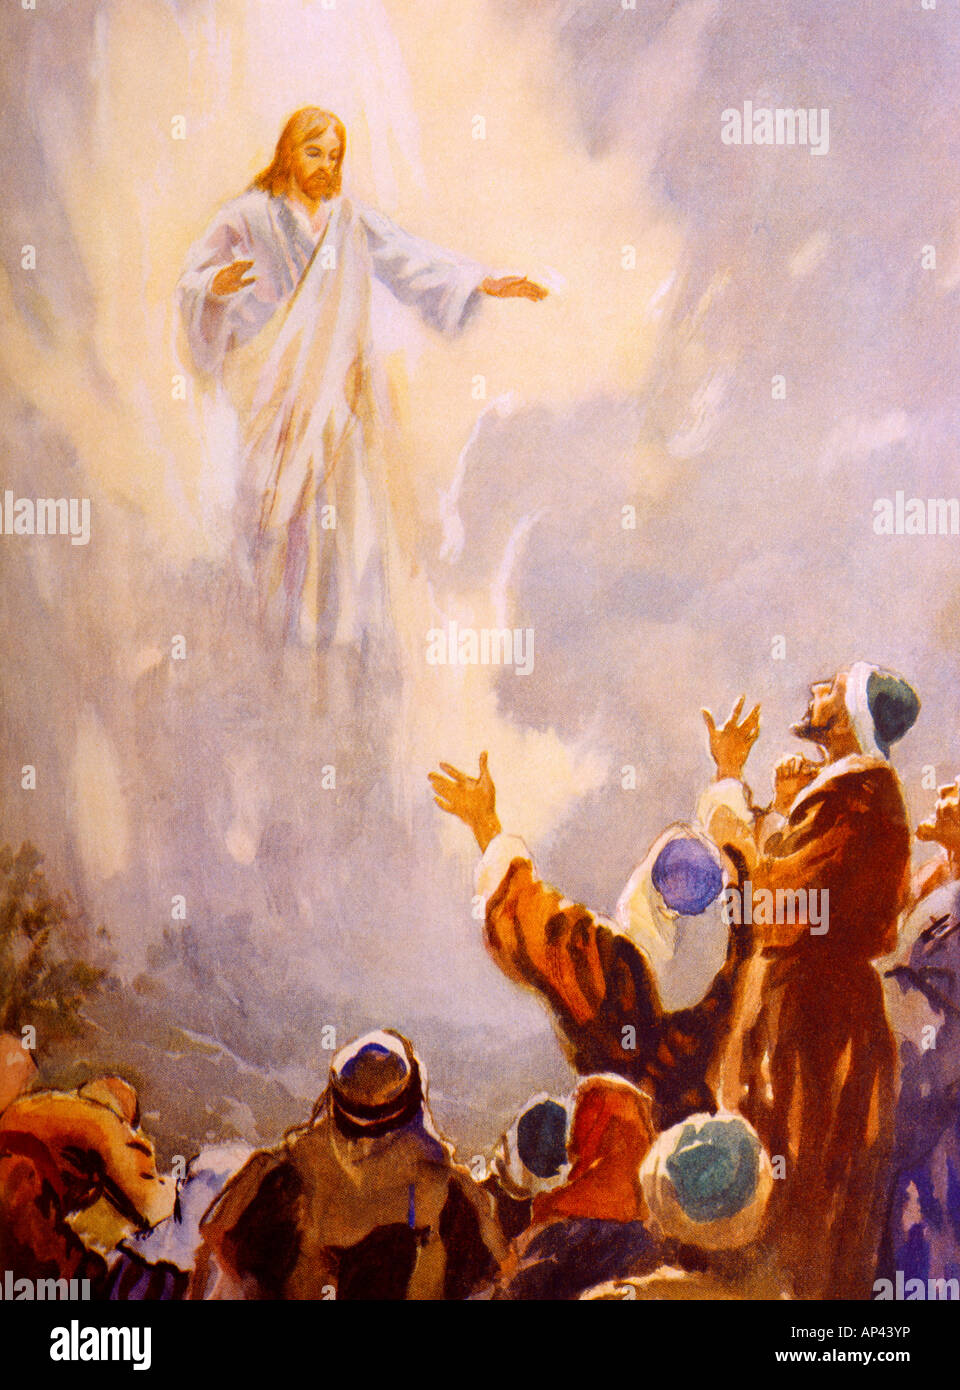 jesus passes from the sight of his followers painting by henry